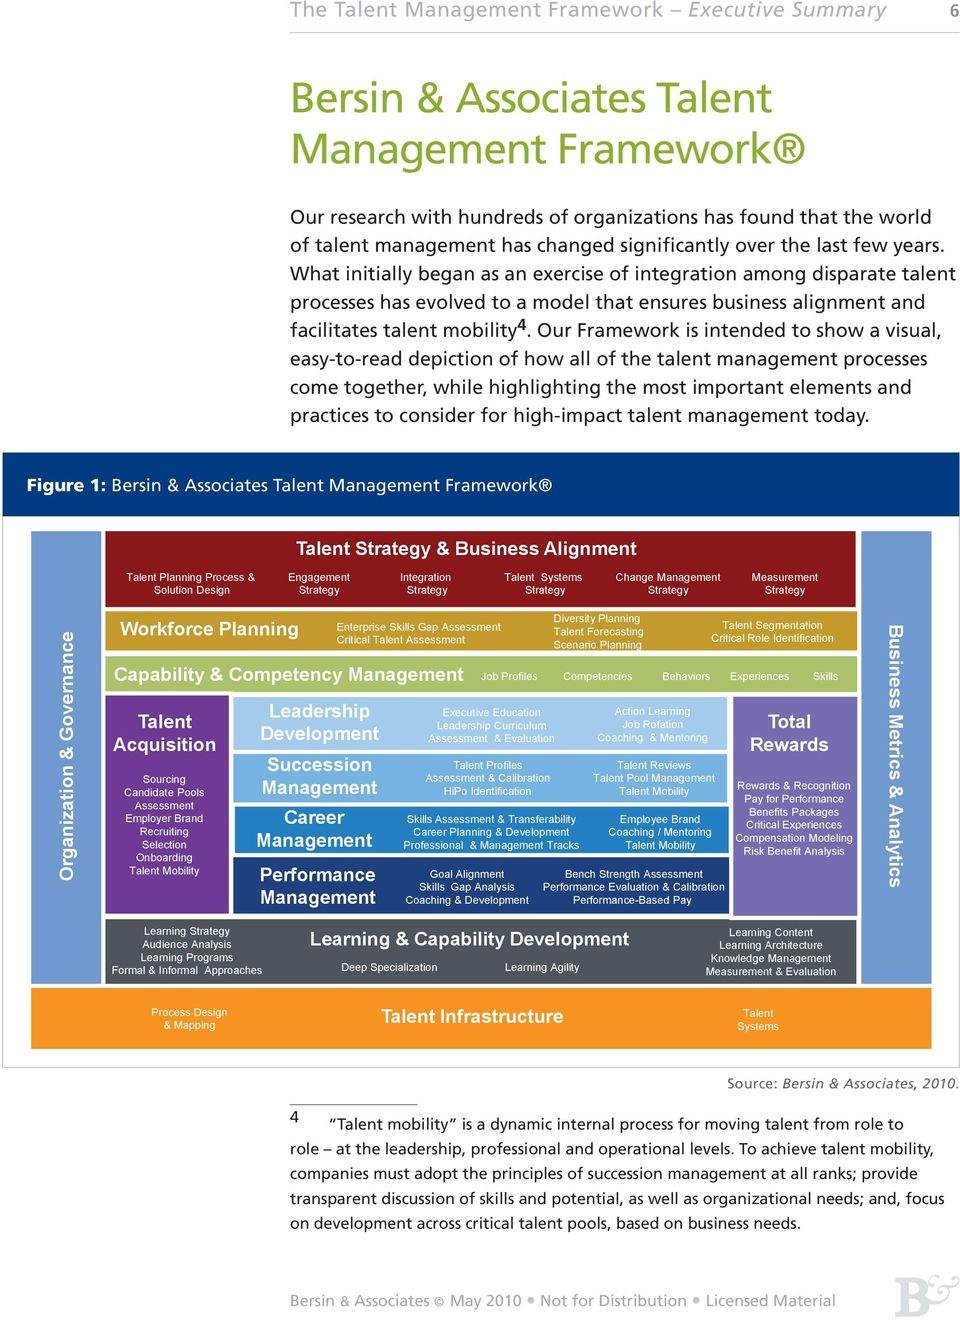 Our Framework is intended to show a visual, easy-to-read depiction of how all of the talent management processes come together, while highlighting the most important elements and practices to